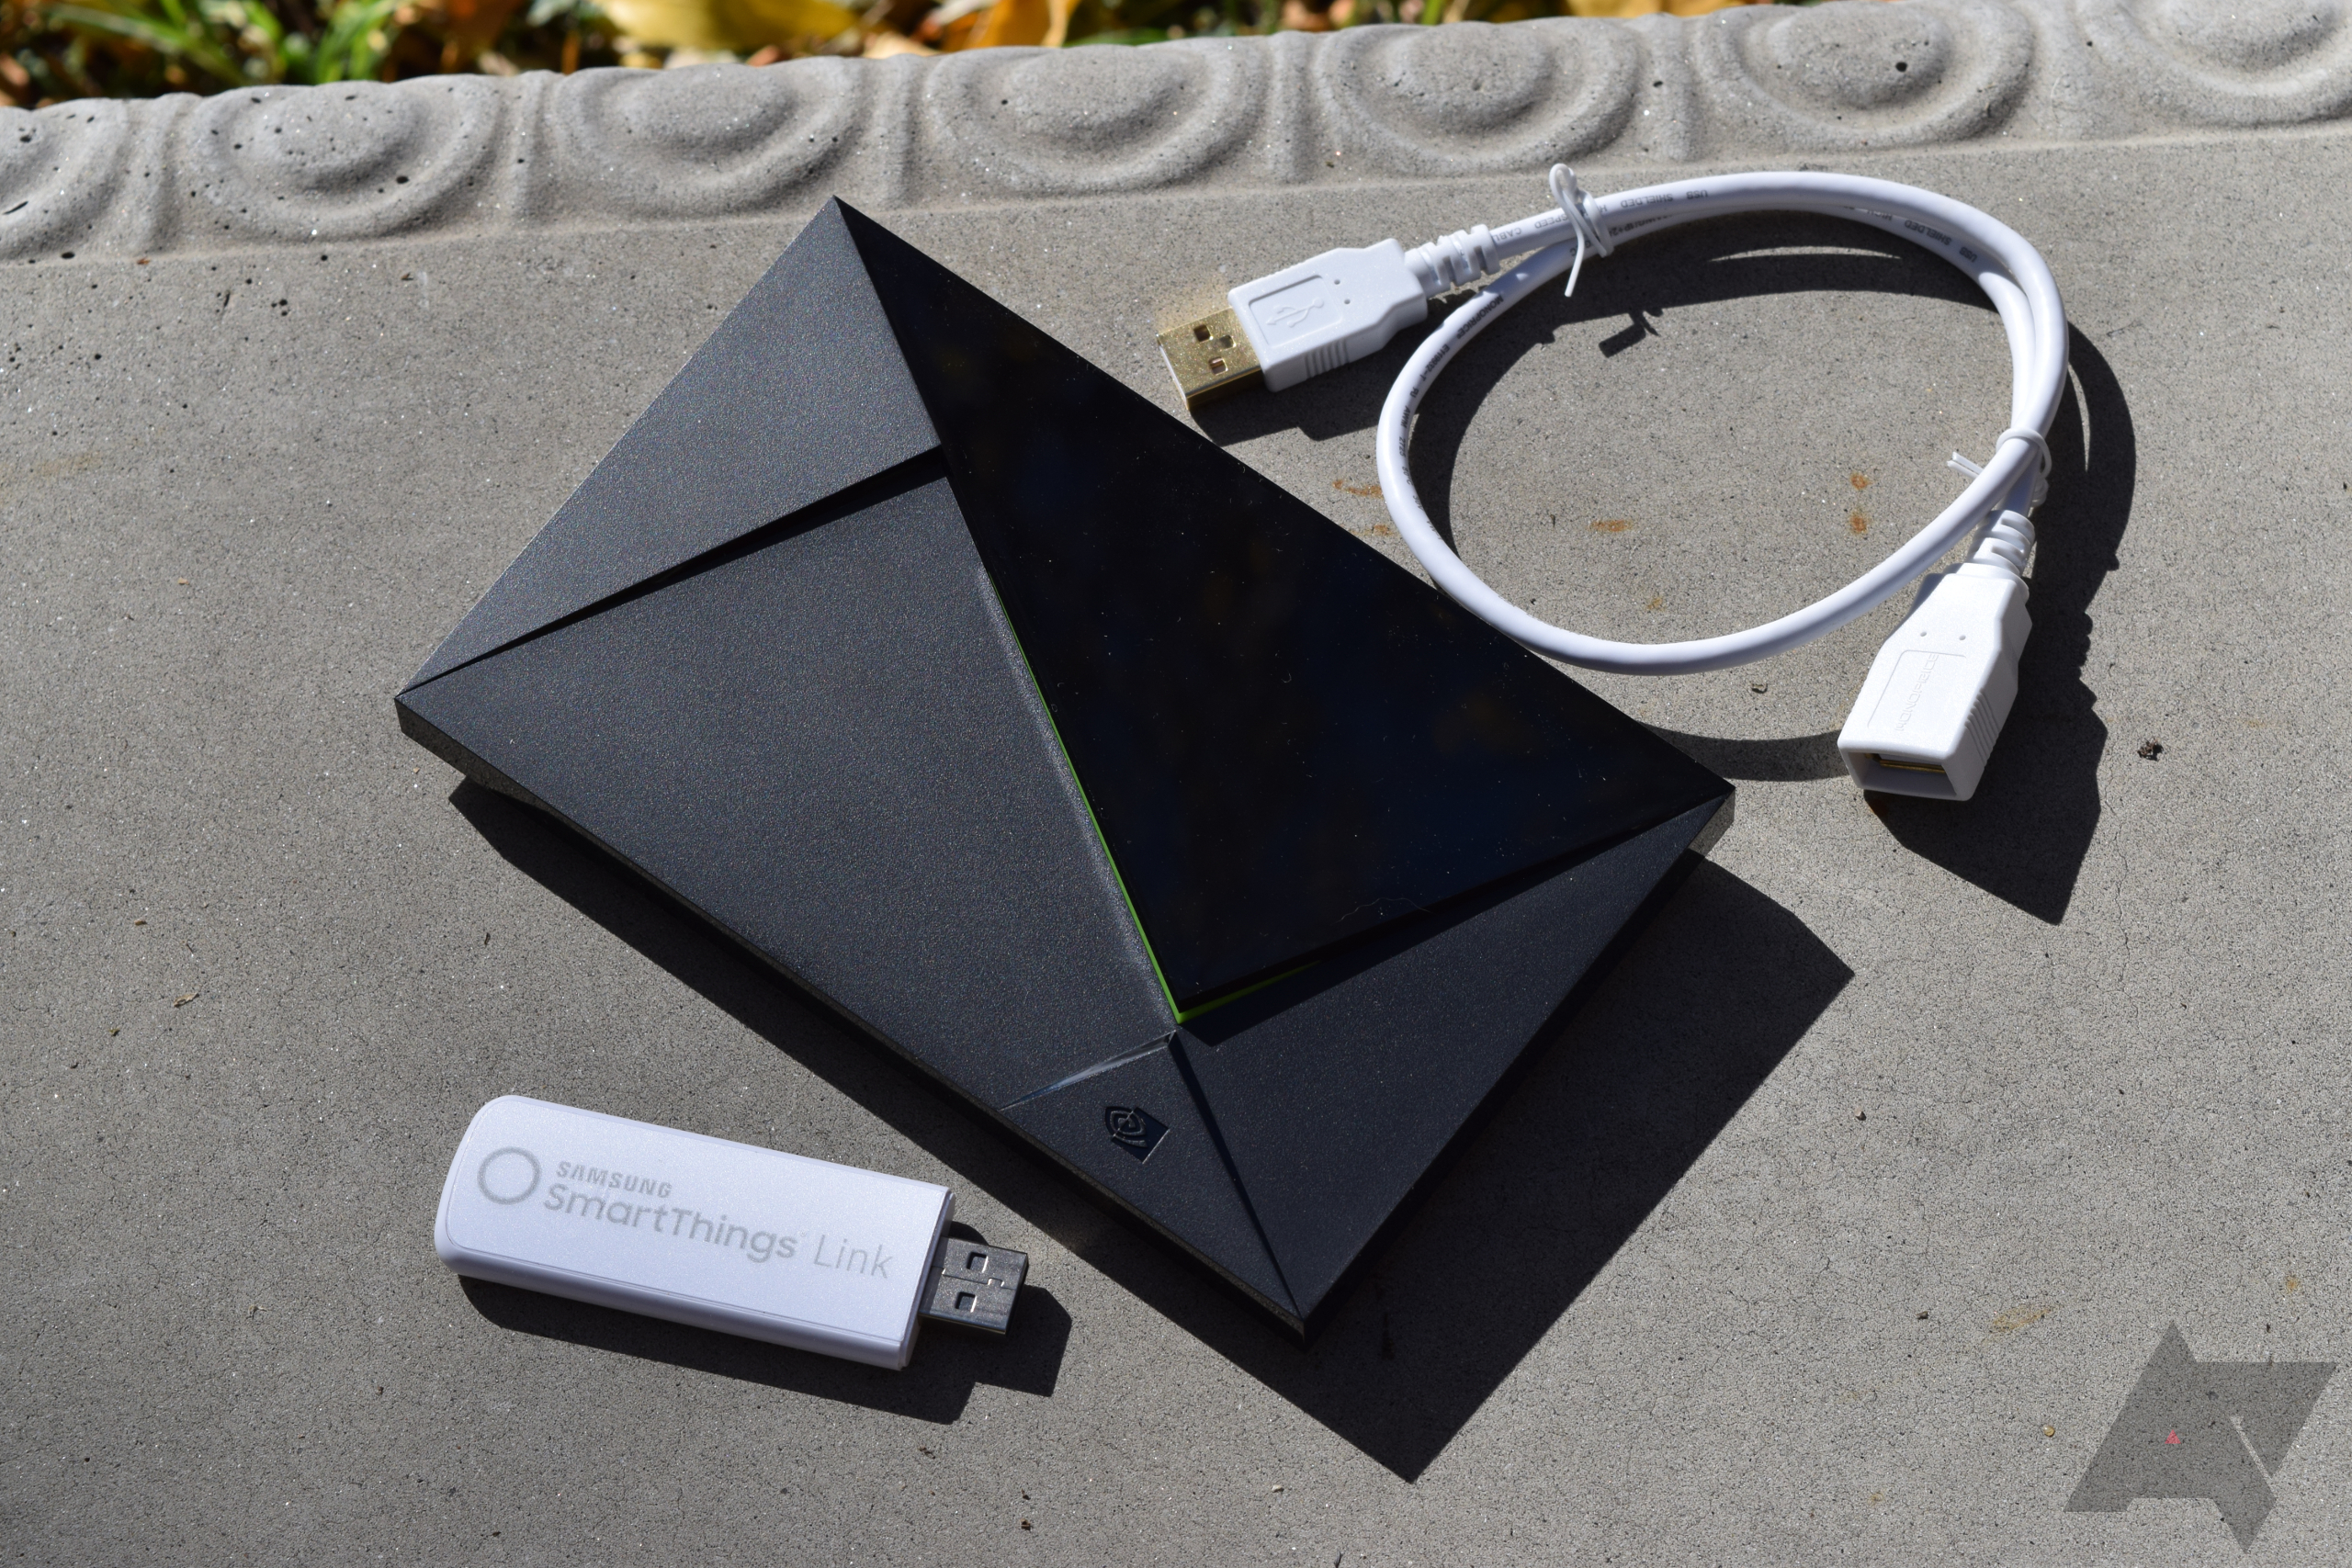 SmartThings Link hands-on: Turning your SHIELD TV into a smart home hub